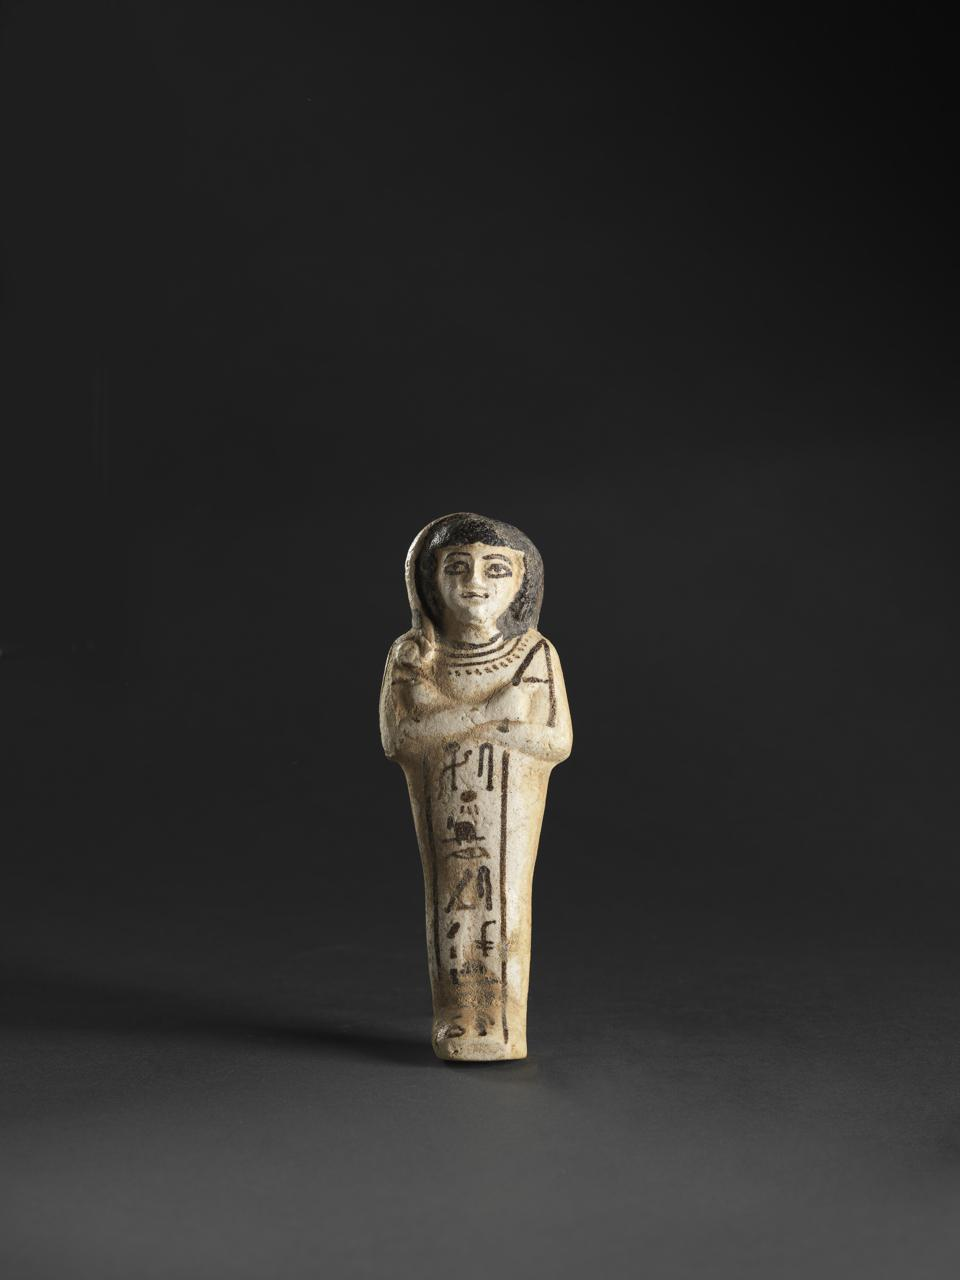 Ushabti figurine for Khaemwaset son of Ramesses II. New Kingdom, 19th Dynasty (13th century BCE). Glazed composition. L 15.5, W 5.5. Gift of Jeannette and Jonathan Rosen, New York, to American Friends of the Israel Museum. 2017.31.335